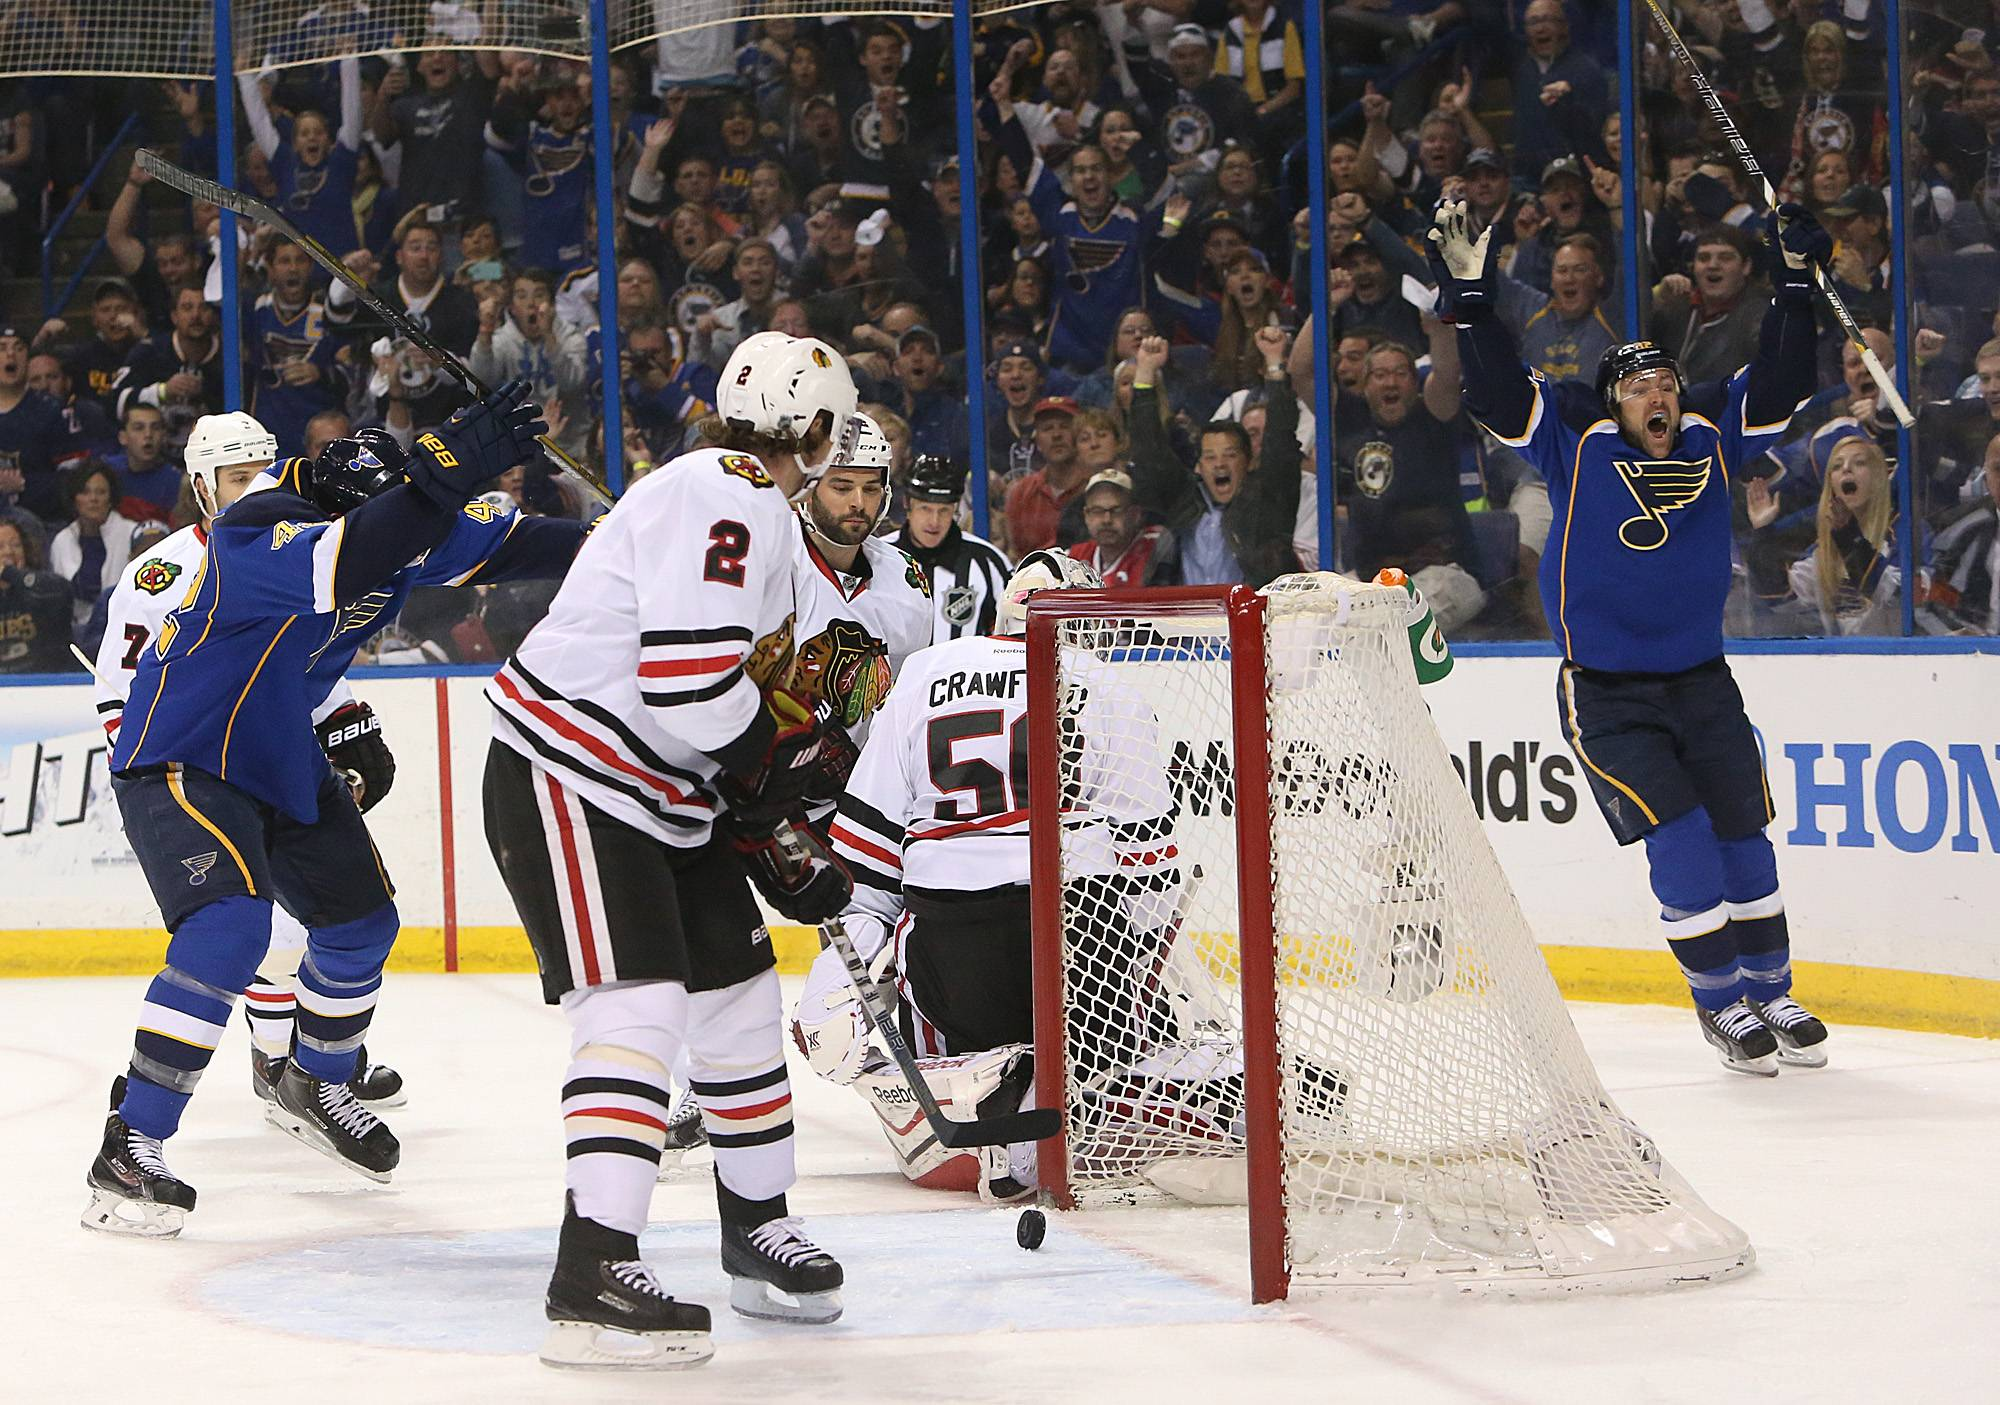 St. Louis Blues left wing Chris Porter, right, reacts after scoring the first goal in the first period of Game 2 of a first-round NHL hockey playoff series against the Chicago Blackhawks, Saturday, April 19, 2014, in St. Louis.